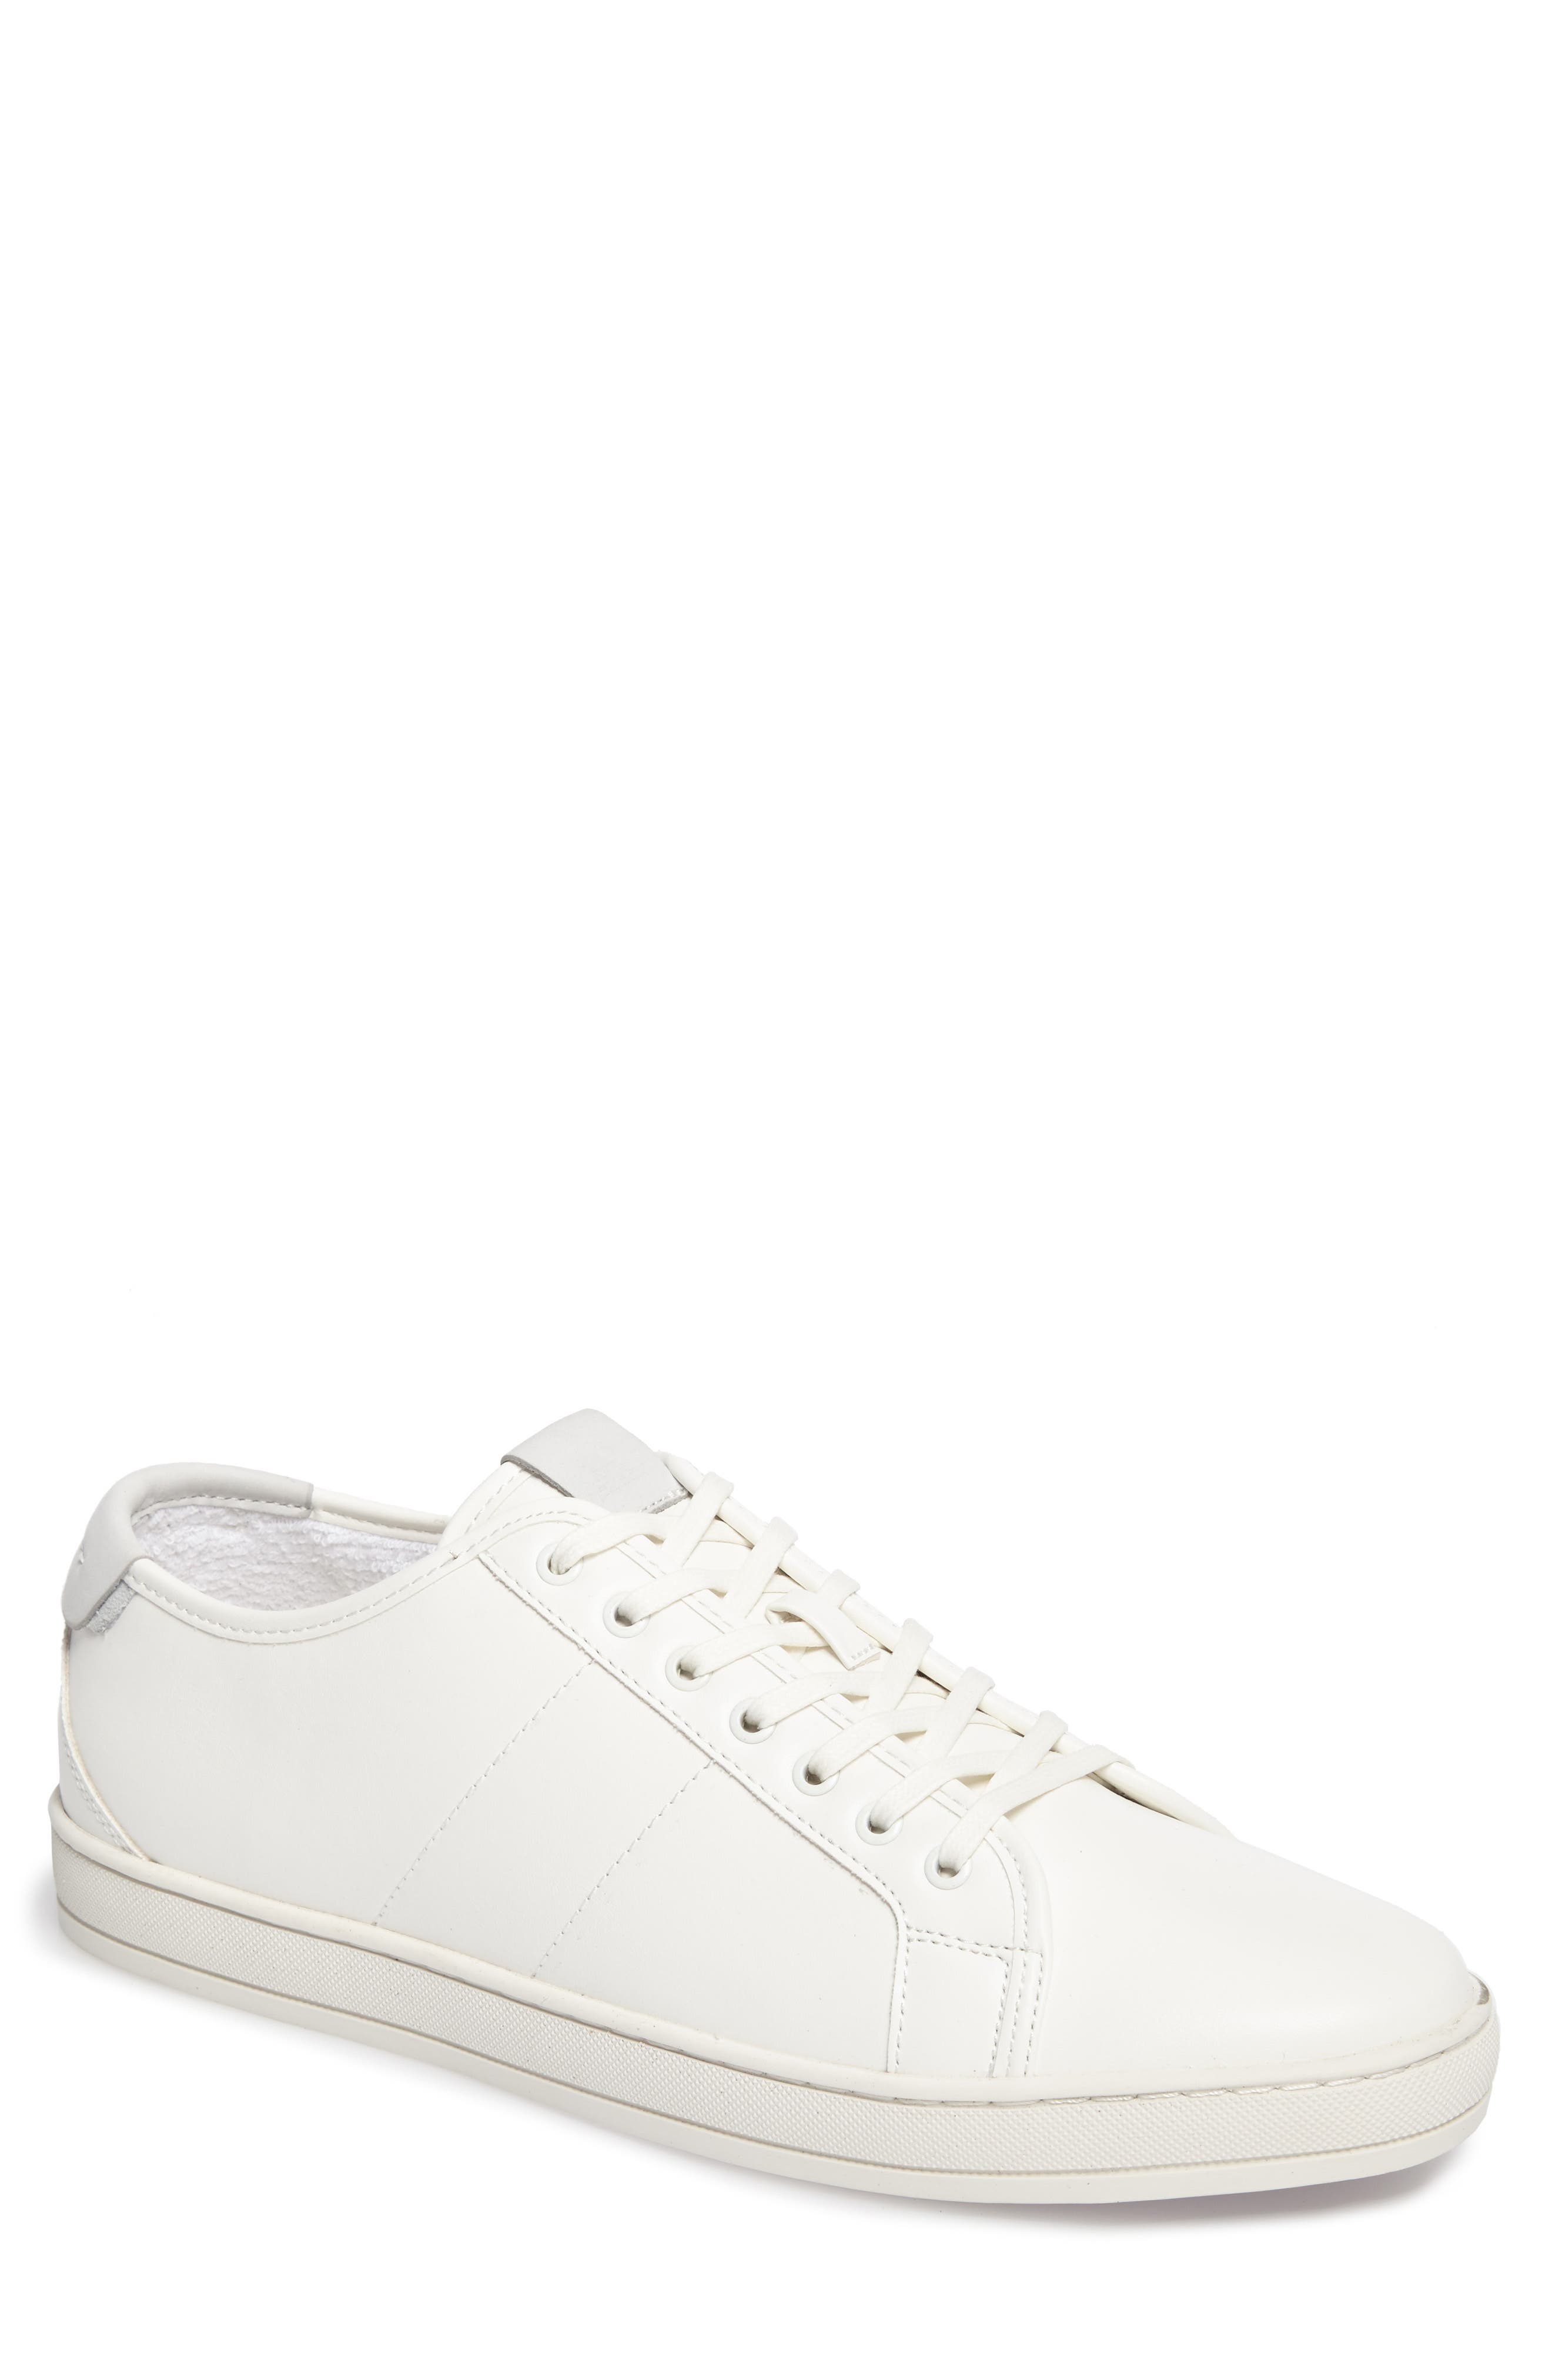 Delello Low-Top Sneaker,                             Main thumbnail 2, color,